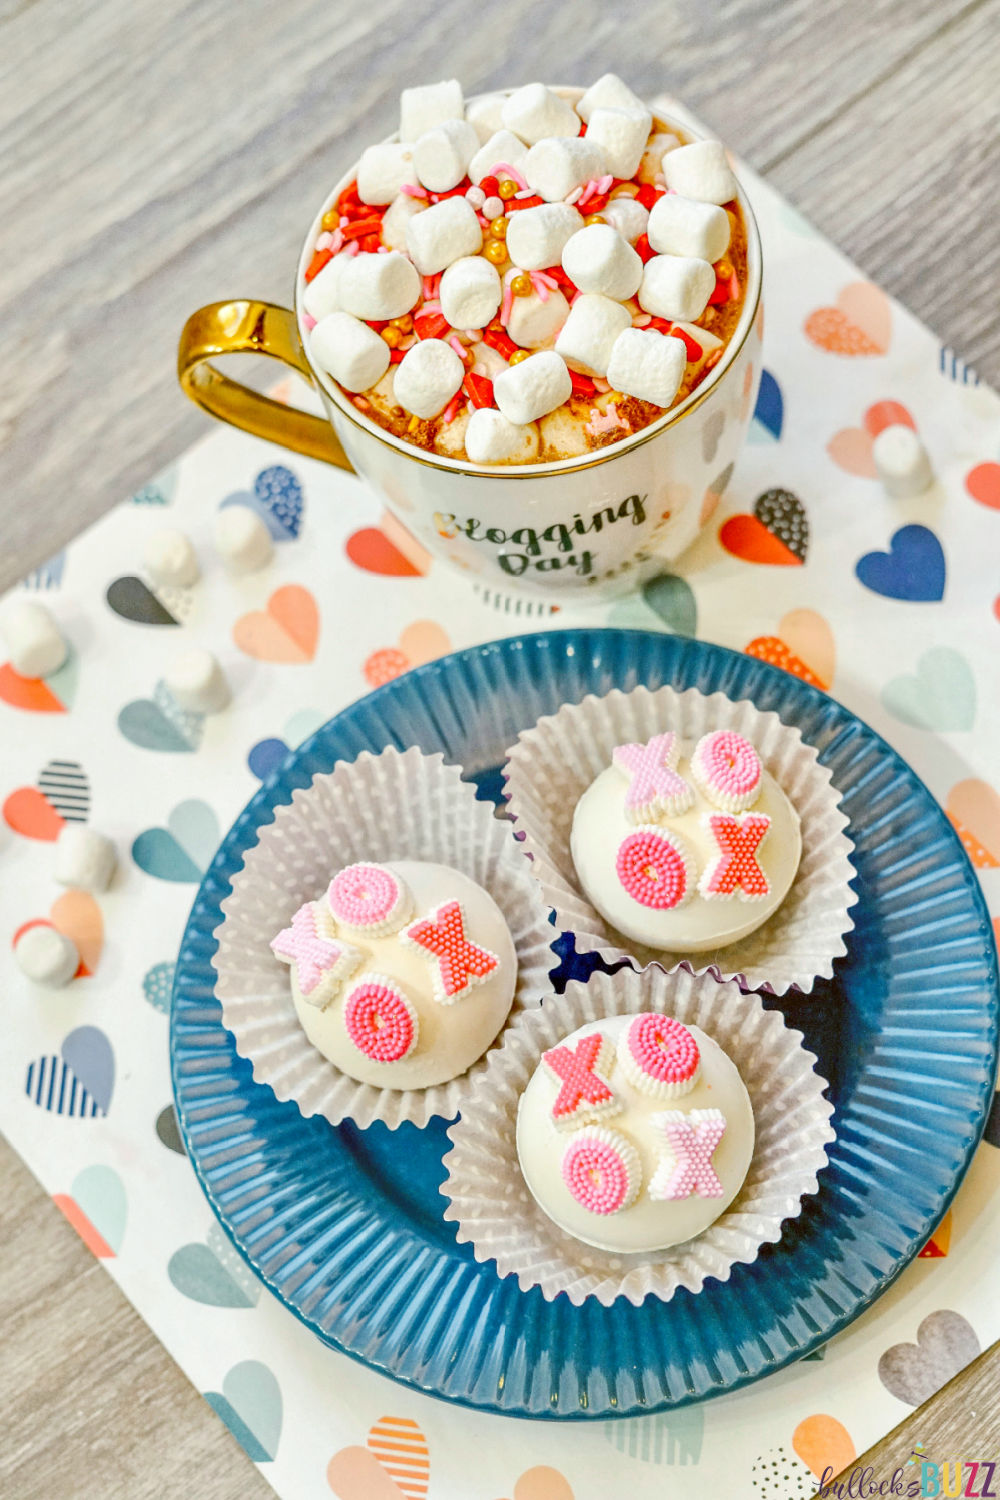 These XOXO Valentine's Day Hot Cocoa Bombs are so much fun to make and even more fun to enjoy! They might look complicated, but with a little practice and the right ingredients and tools, making them is easier than you think!